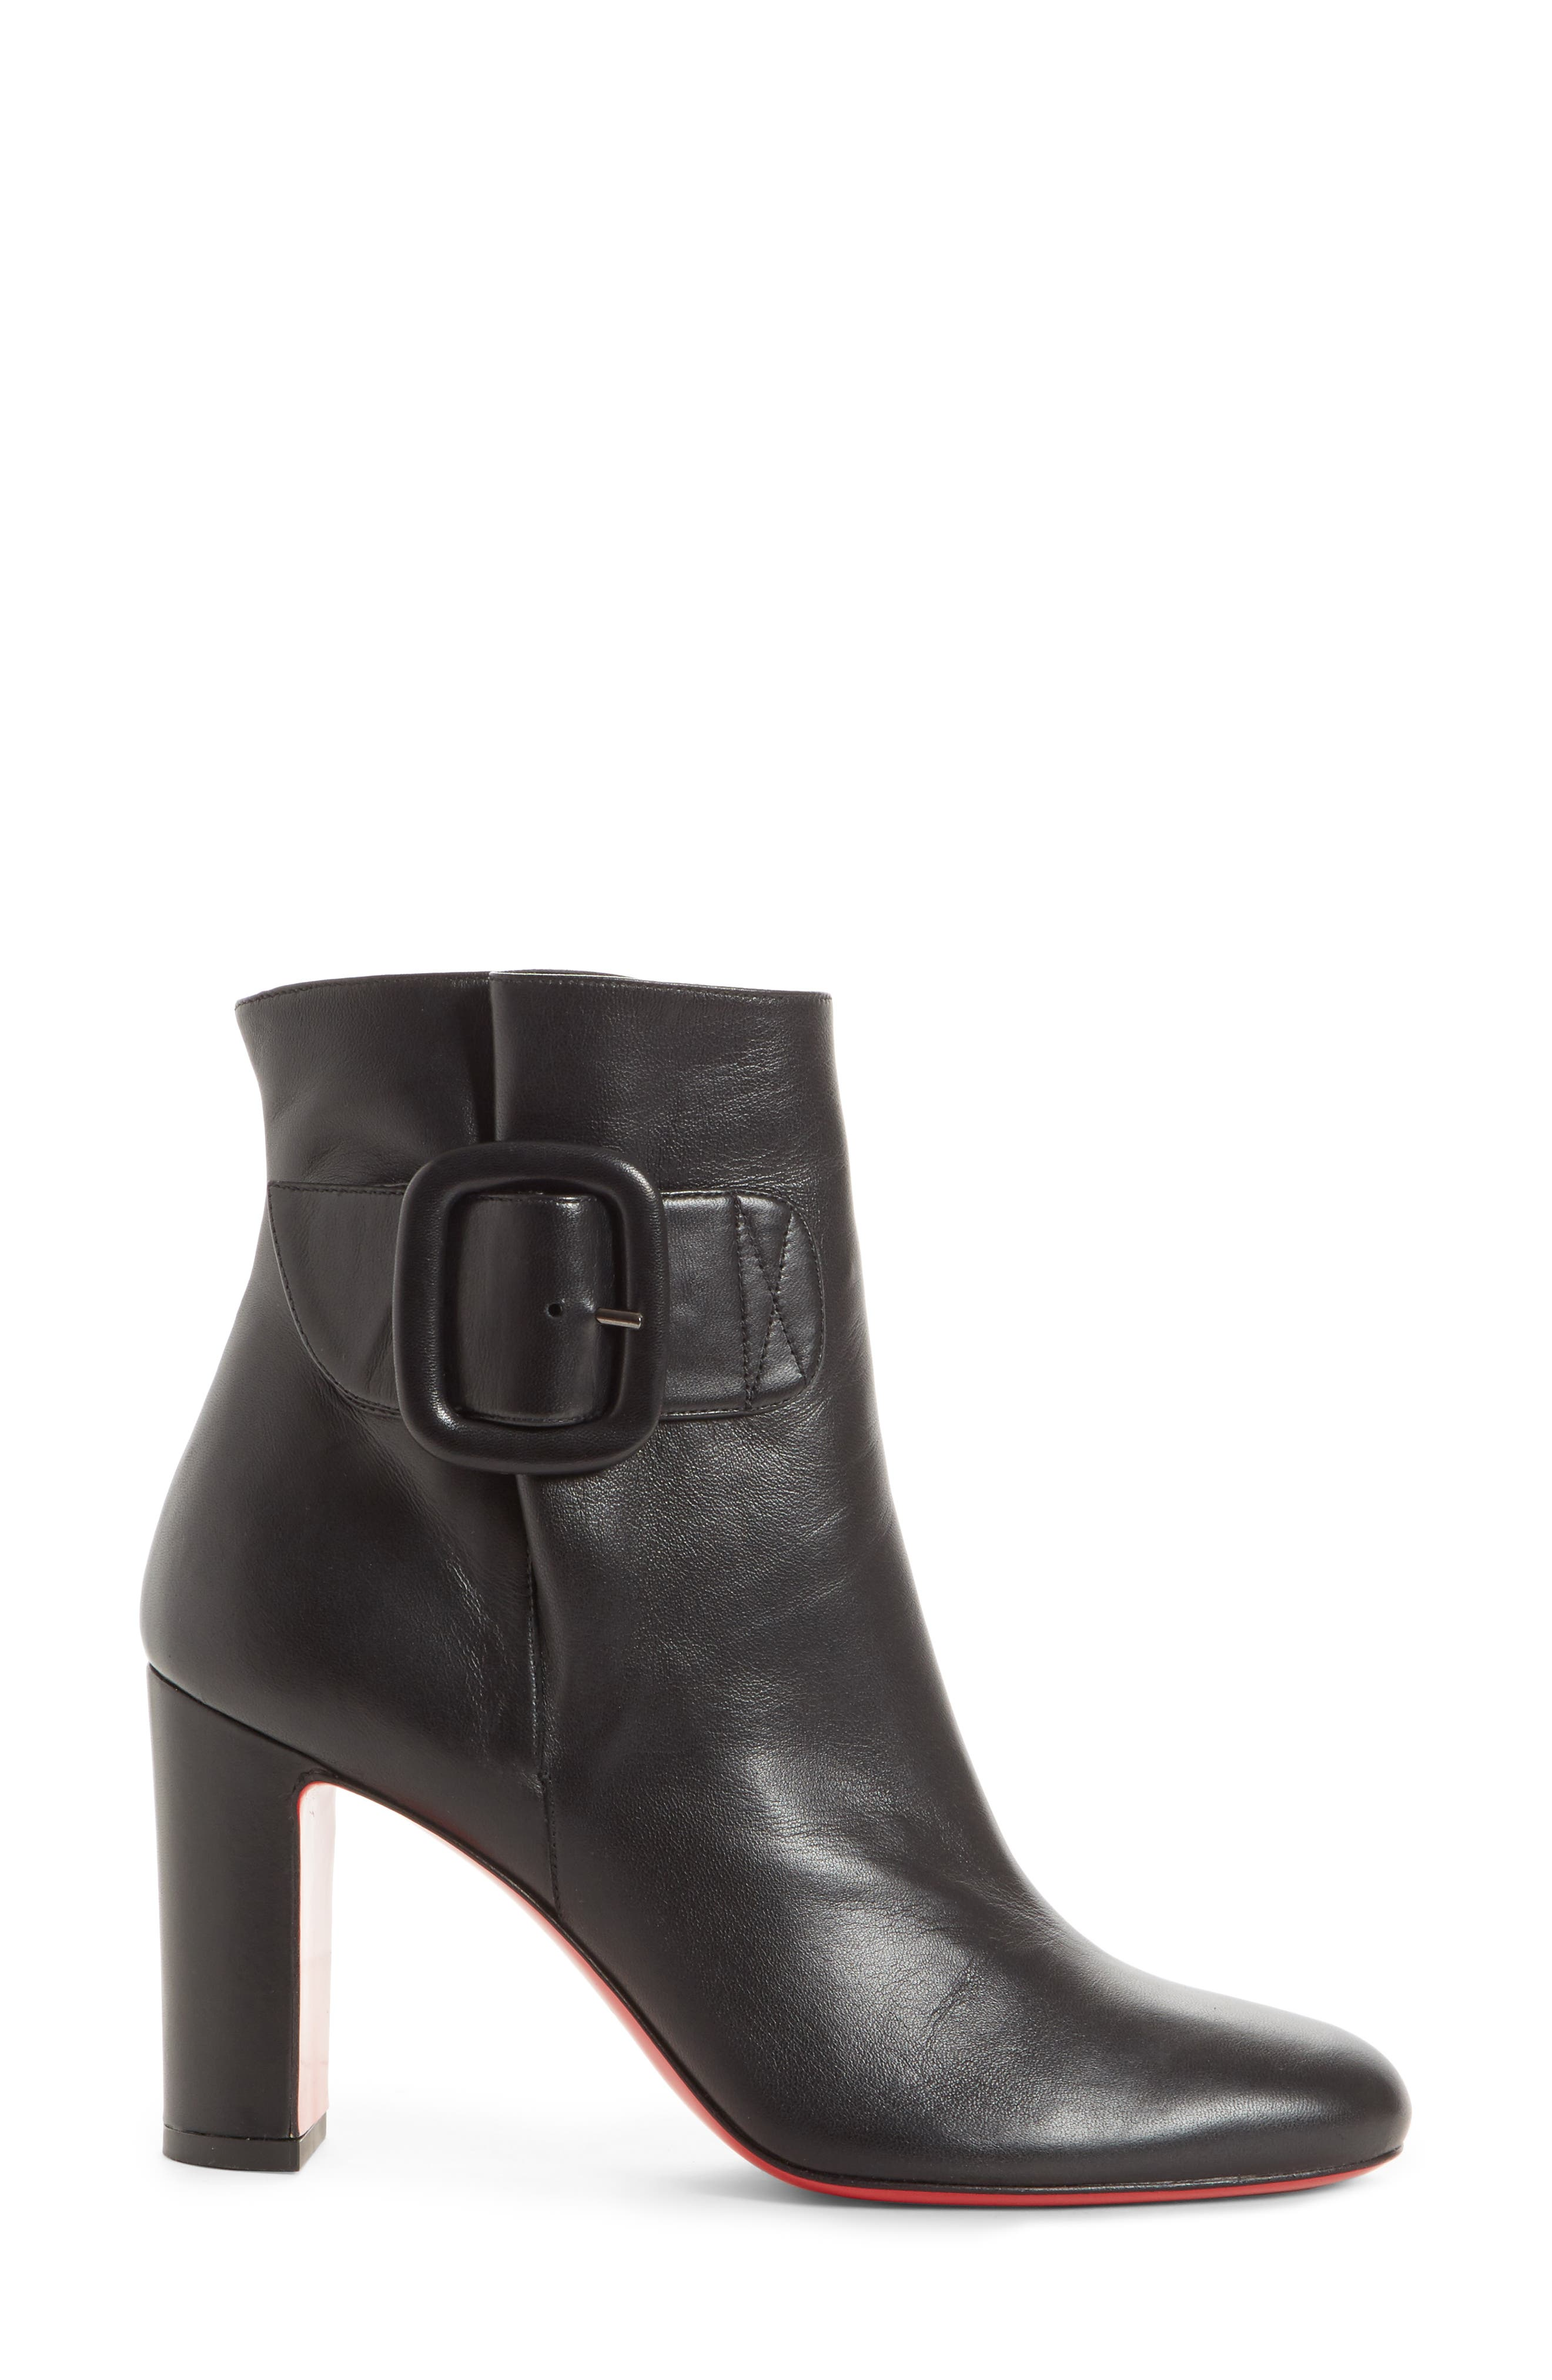 CHRISTIAN LOUBOUTIN,                             Tres Olivia Buckle Bootie,                             Alternate thumbnail 3, color,                             BLACK LEATHER